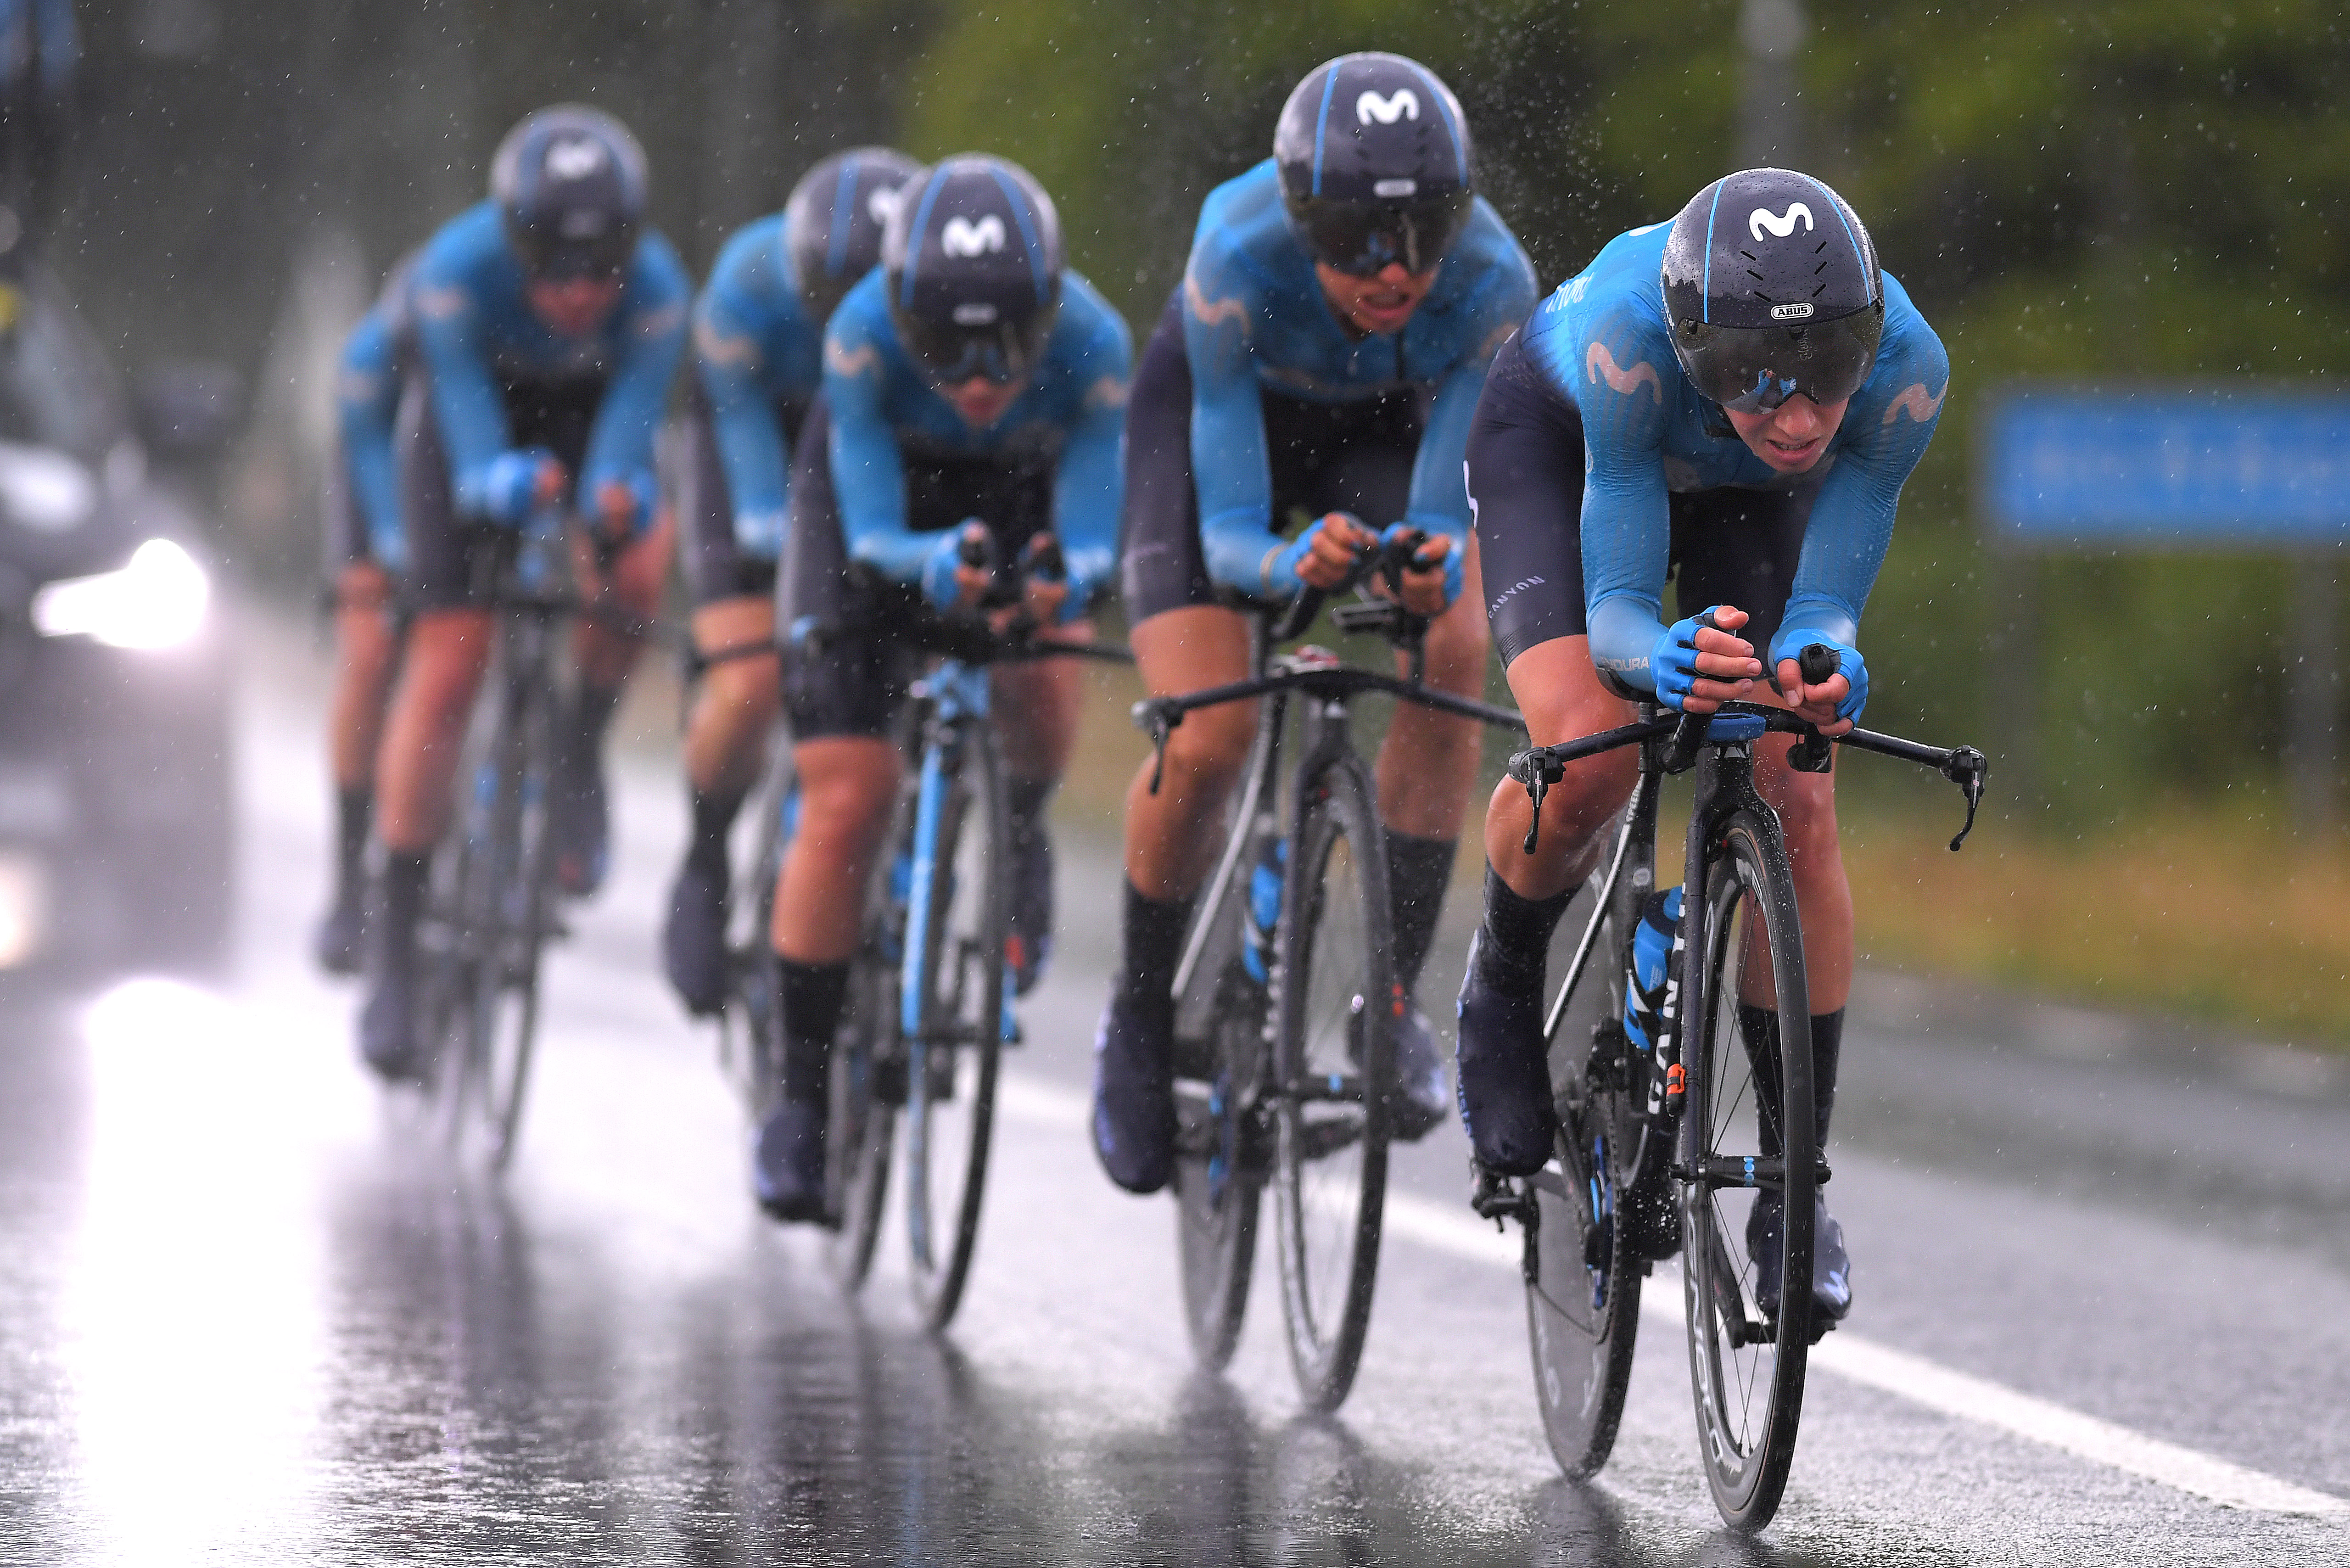 Movistar joins the race to become a sustainable and green cycling team - Cycling Weekly